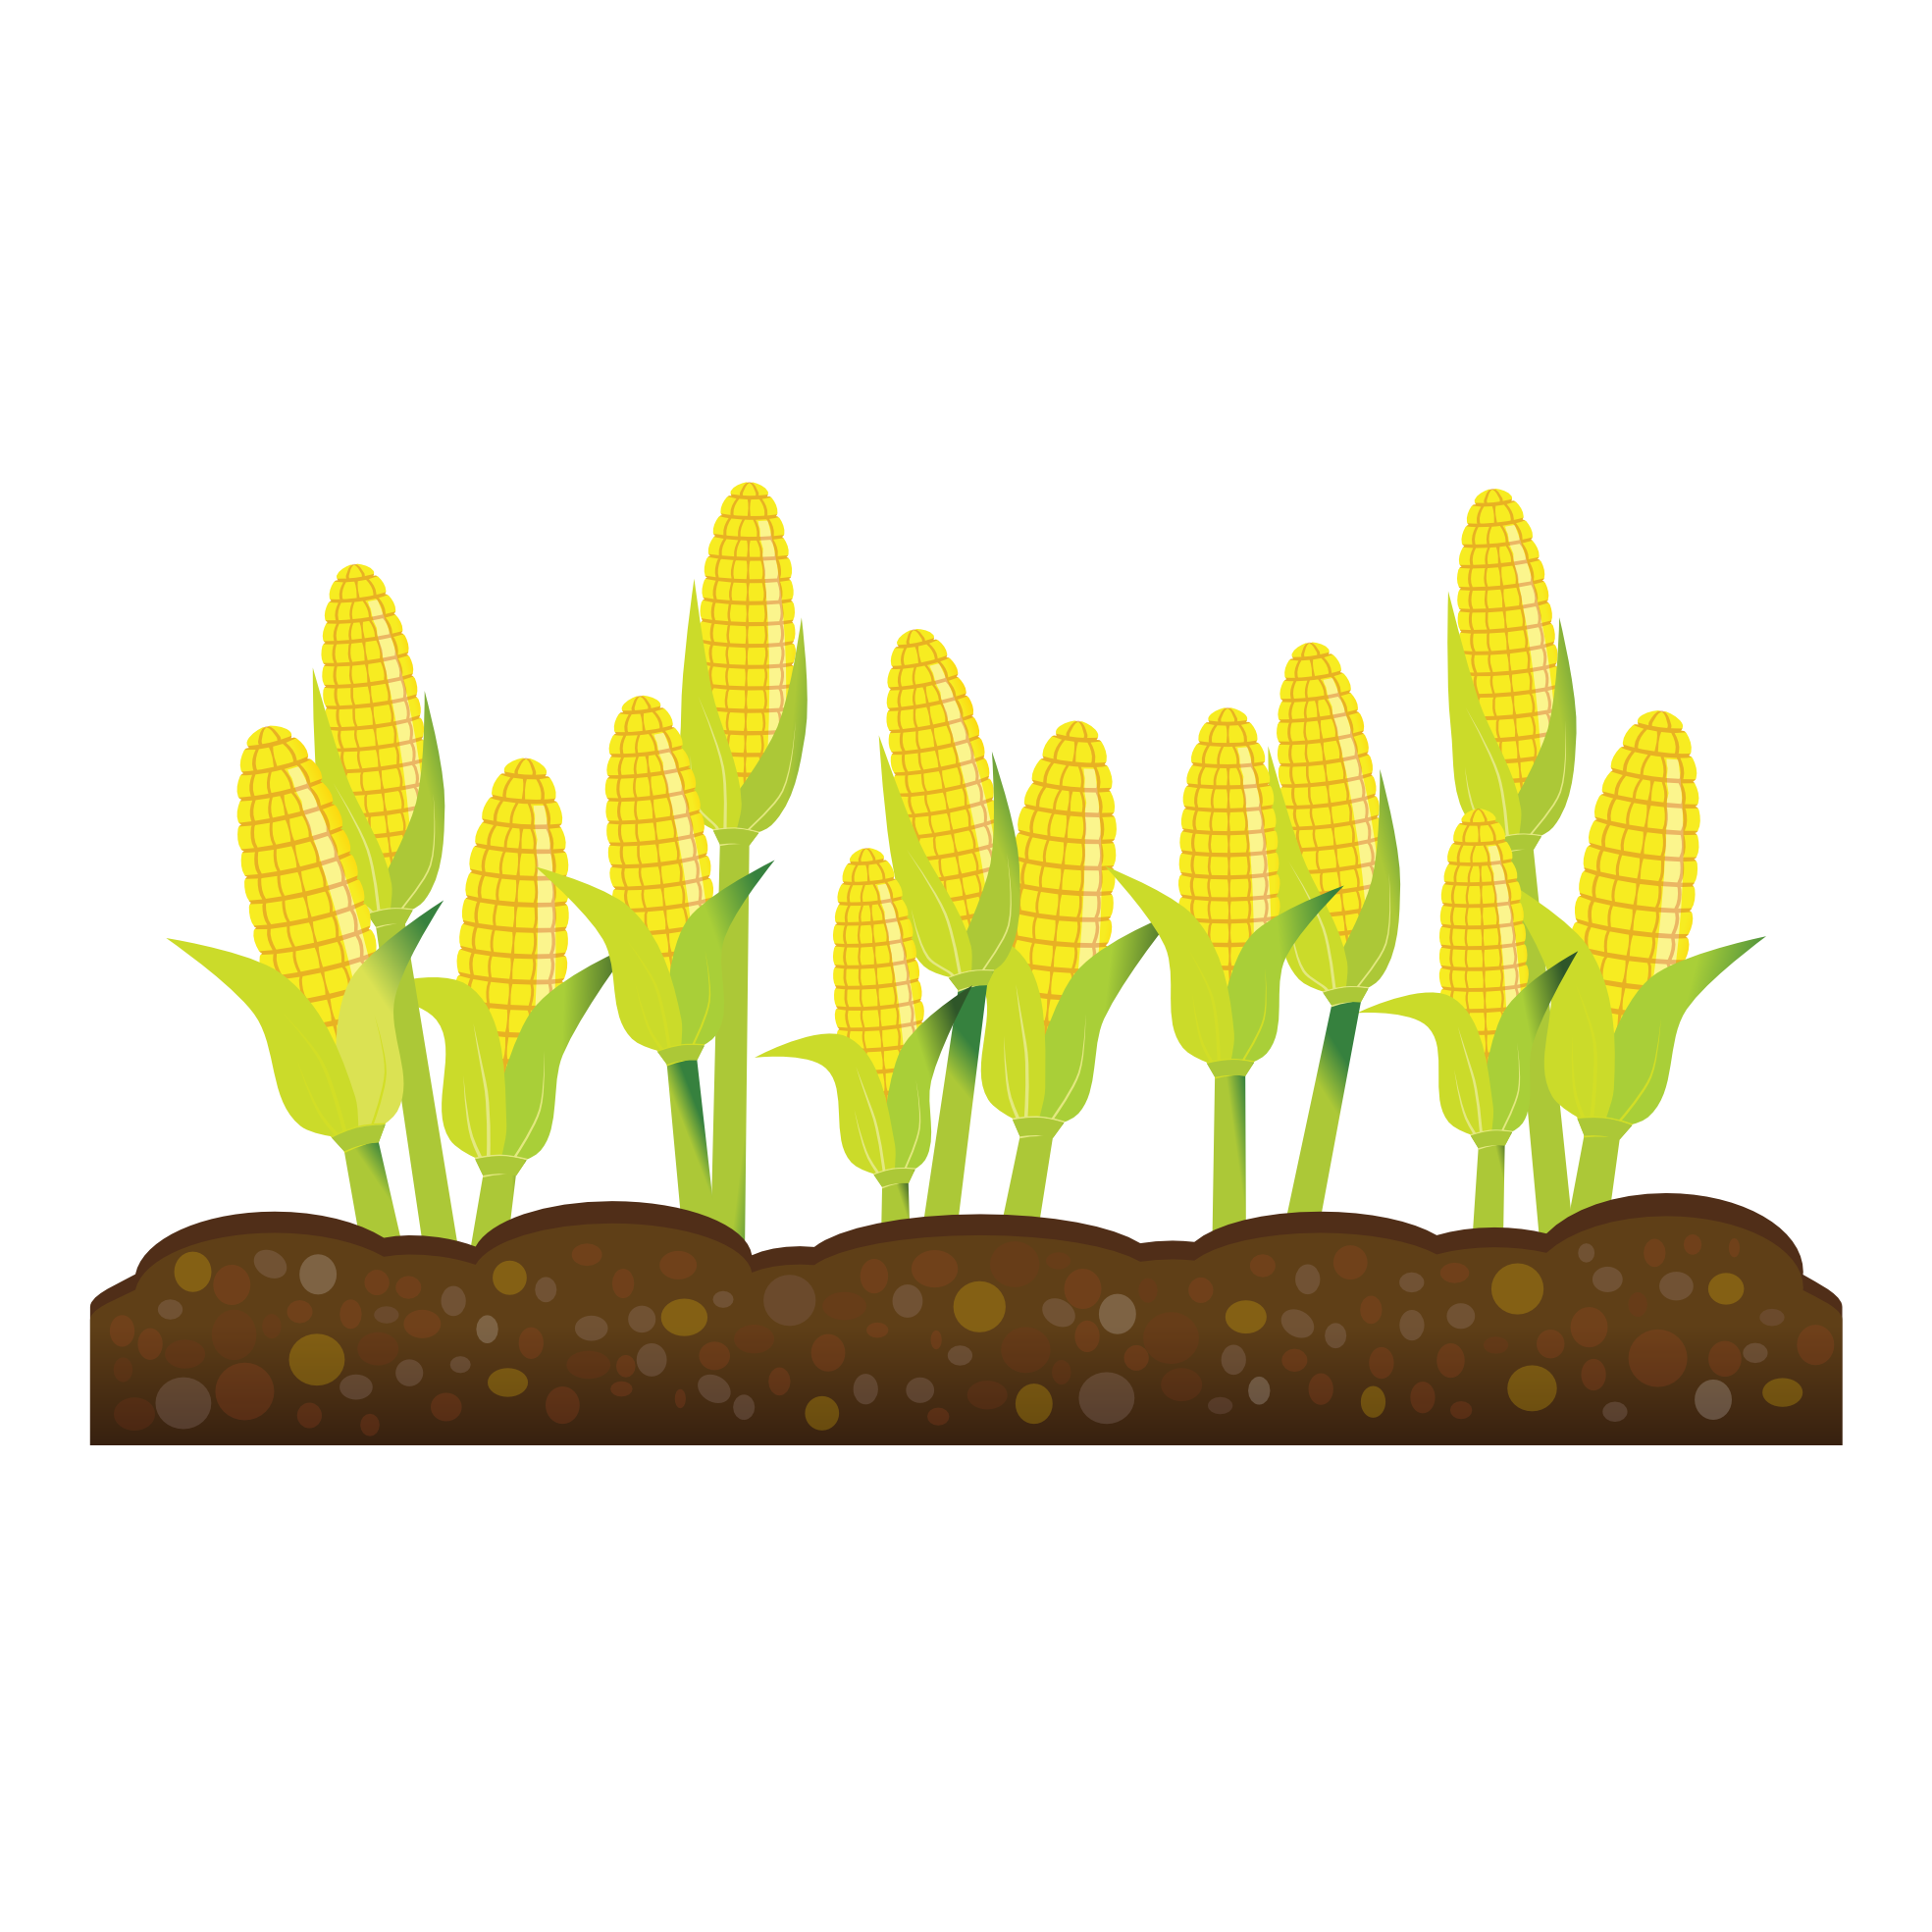 Crops Growing Corn clipart free image.